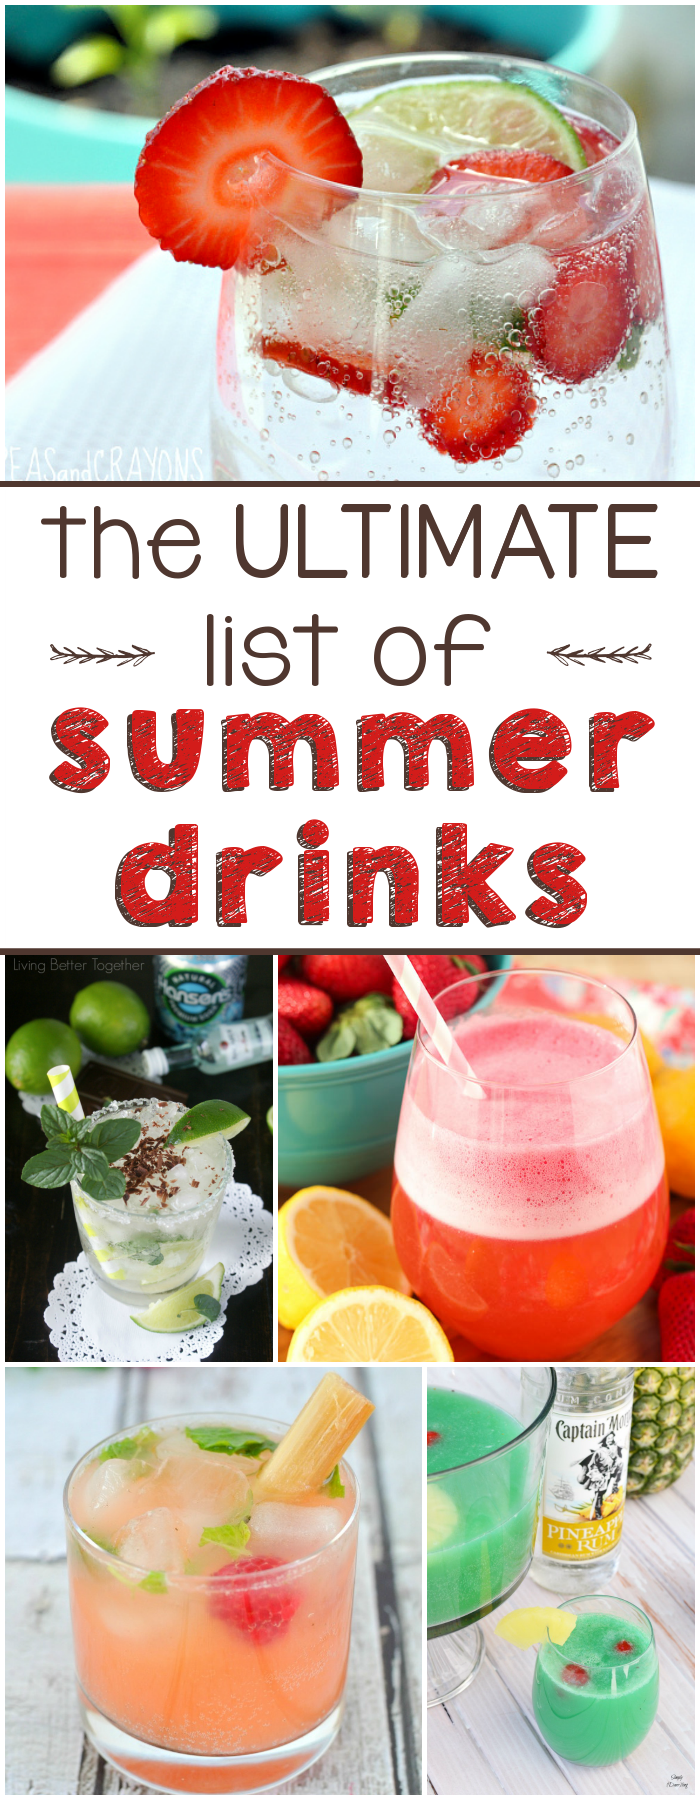 The ULTIMATE list of Summer Drinks collage.